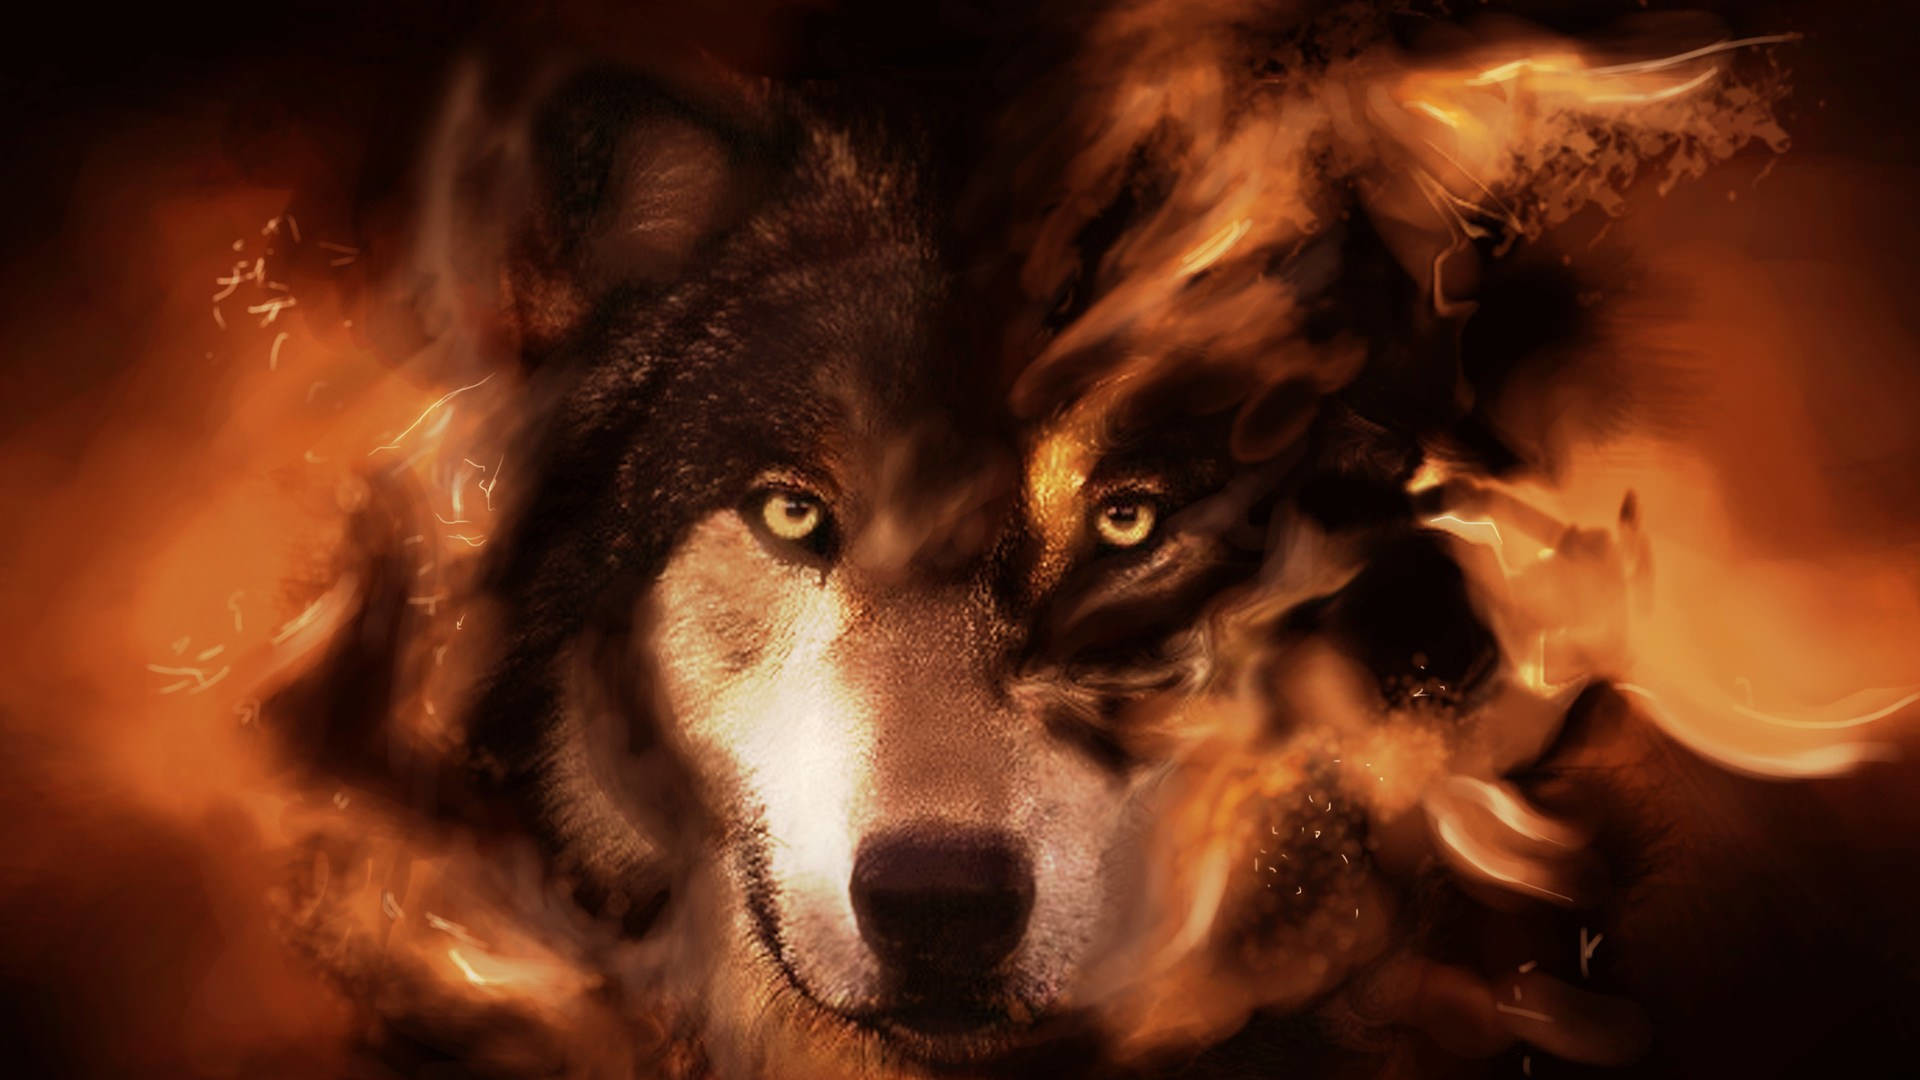 Graphically Designed Wolf Wallpaper